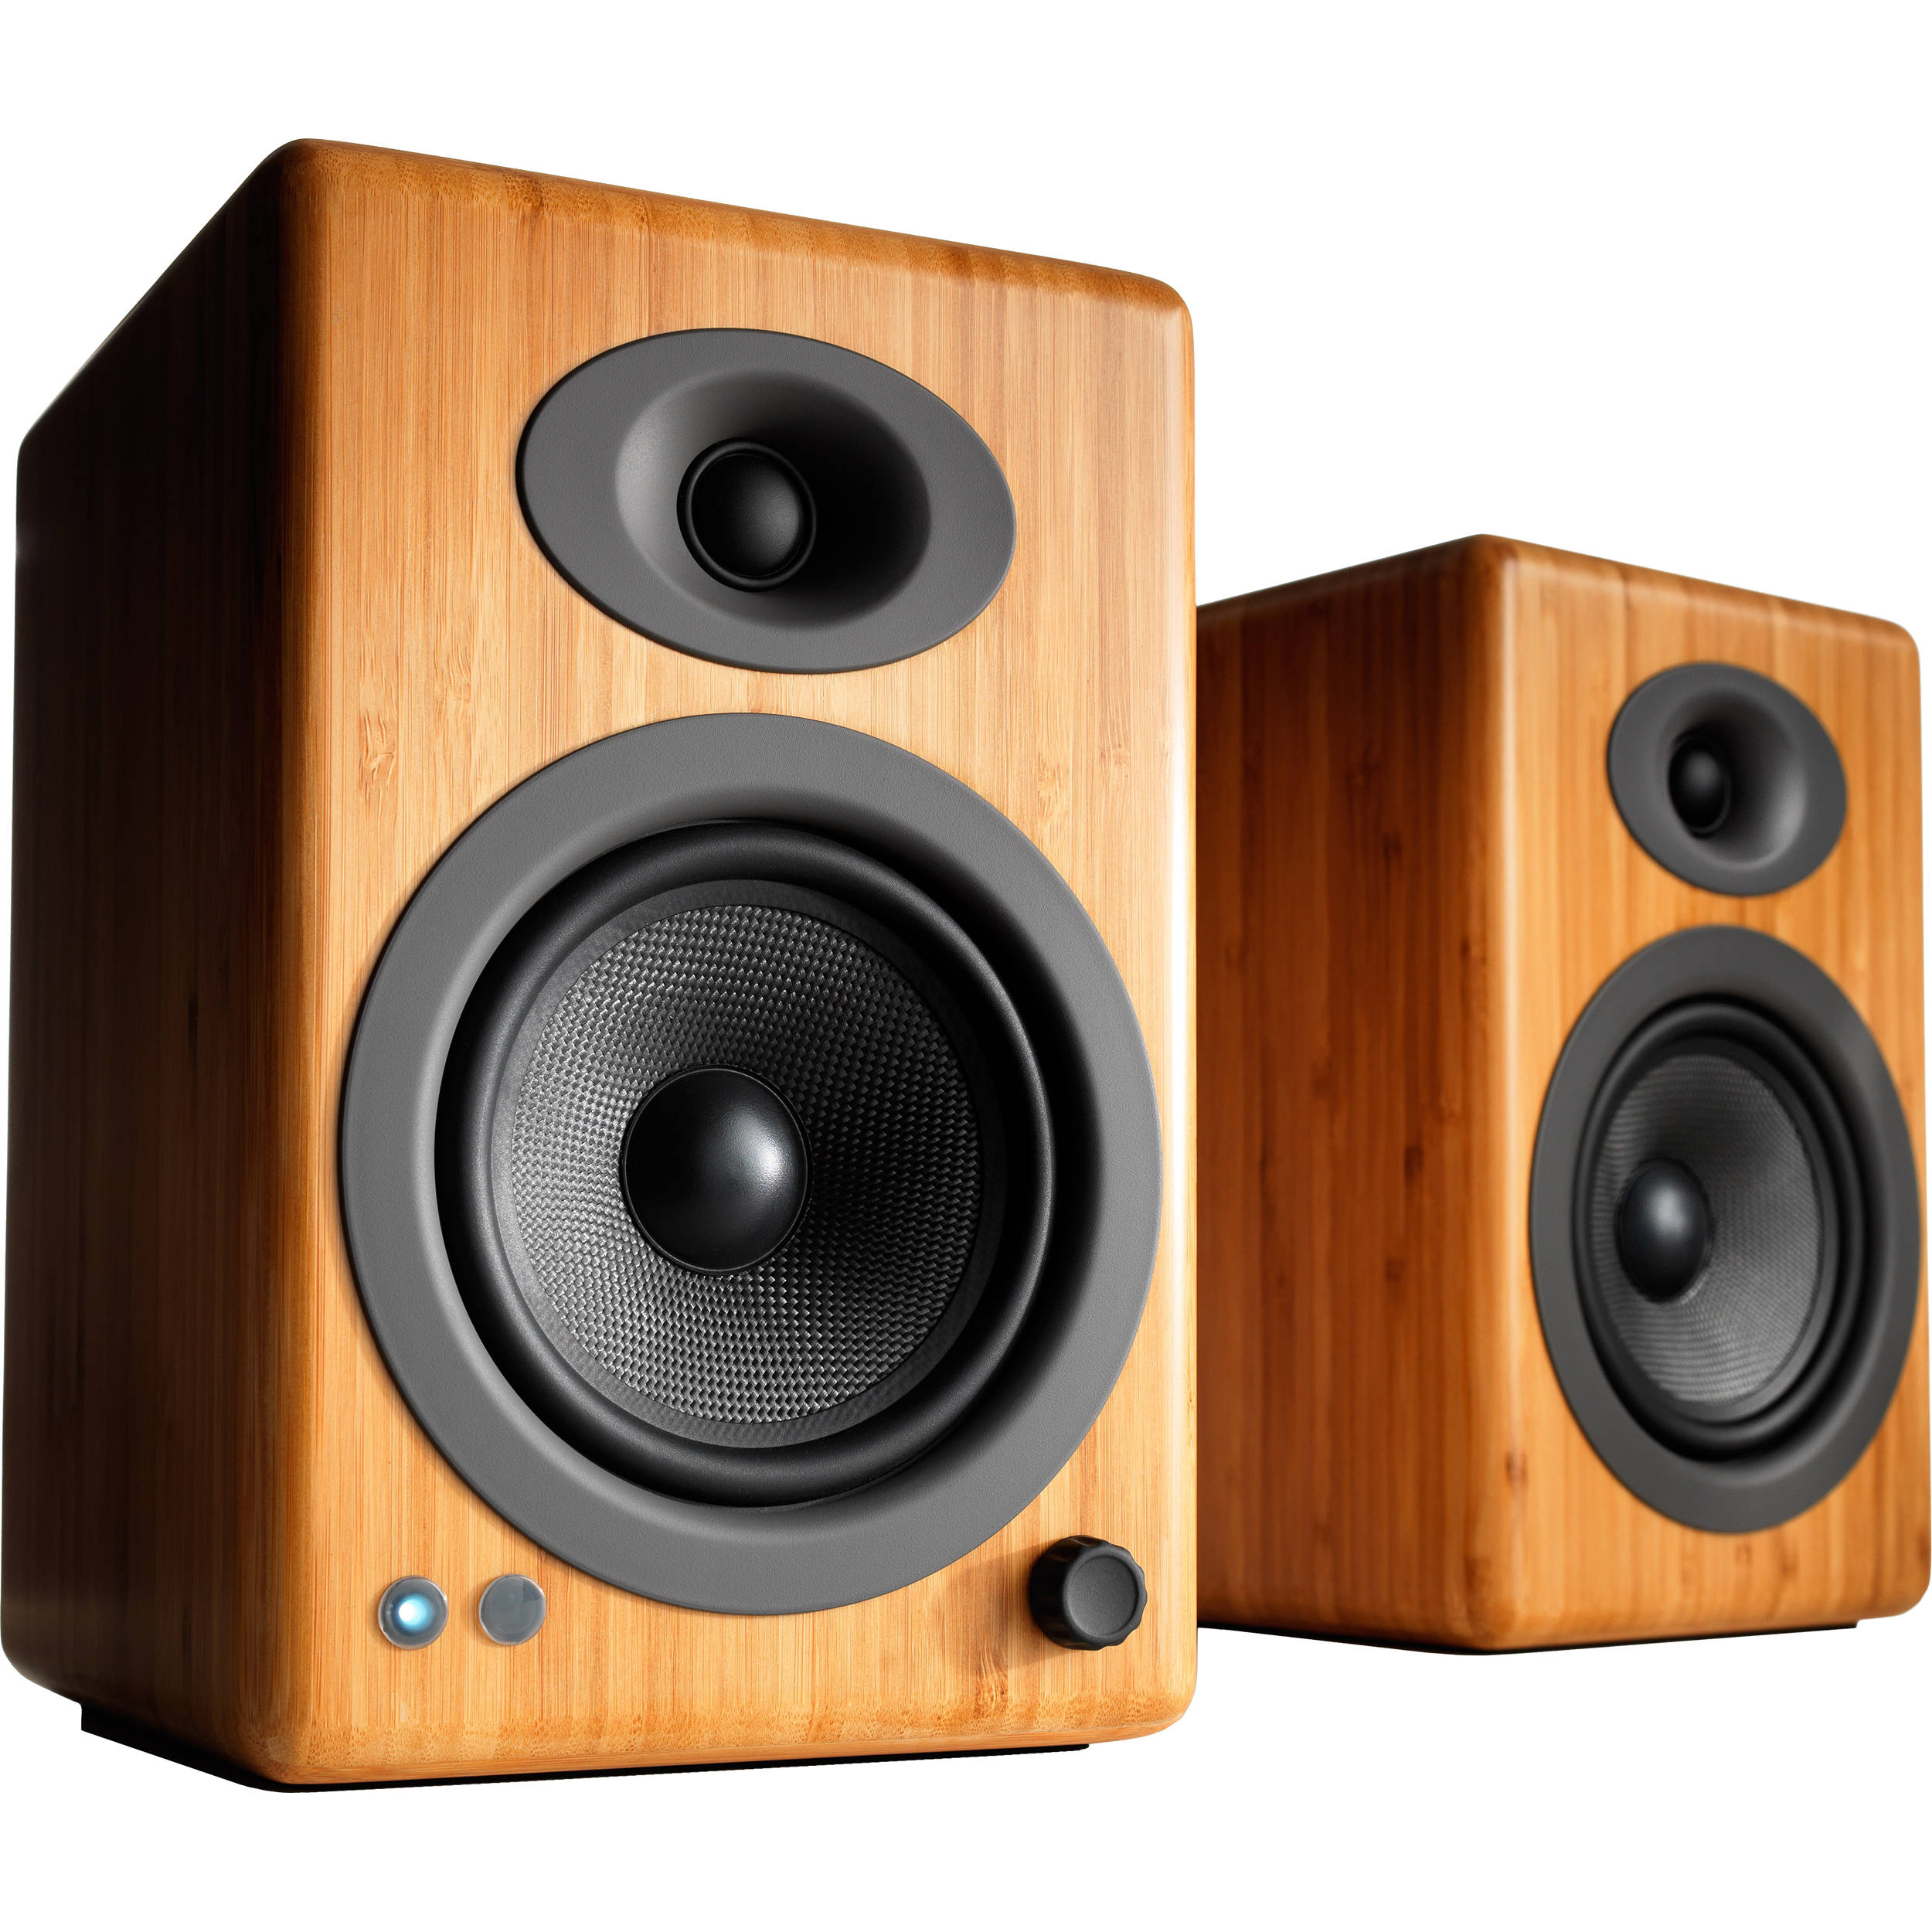 speaker powered better and looks great reviews offer bookshelf speakers audioengine image even geardiary sound